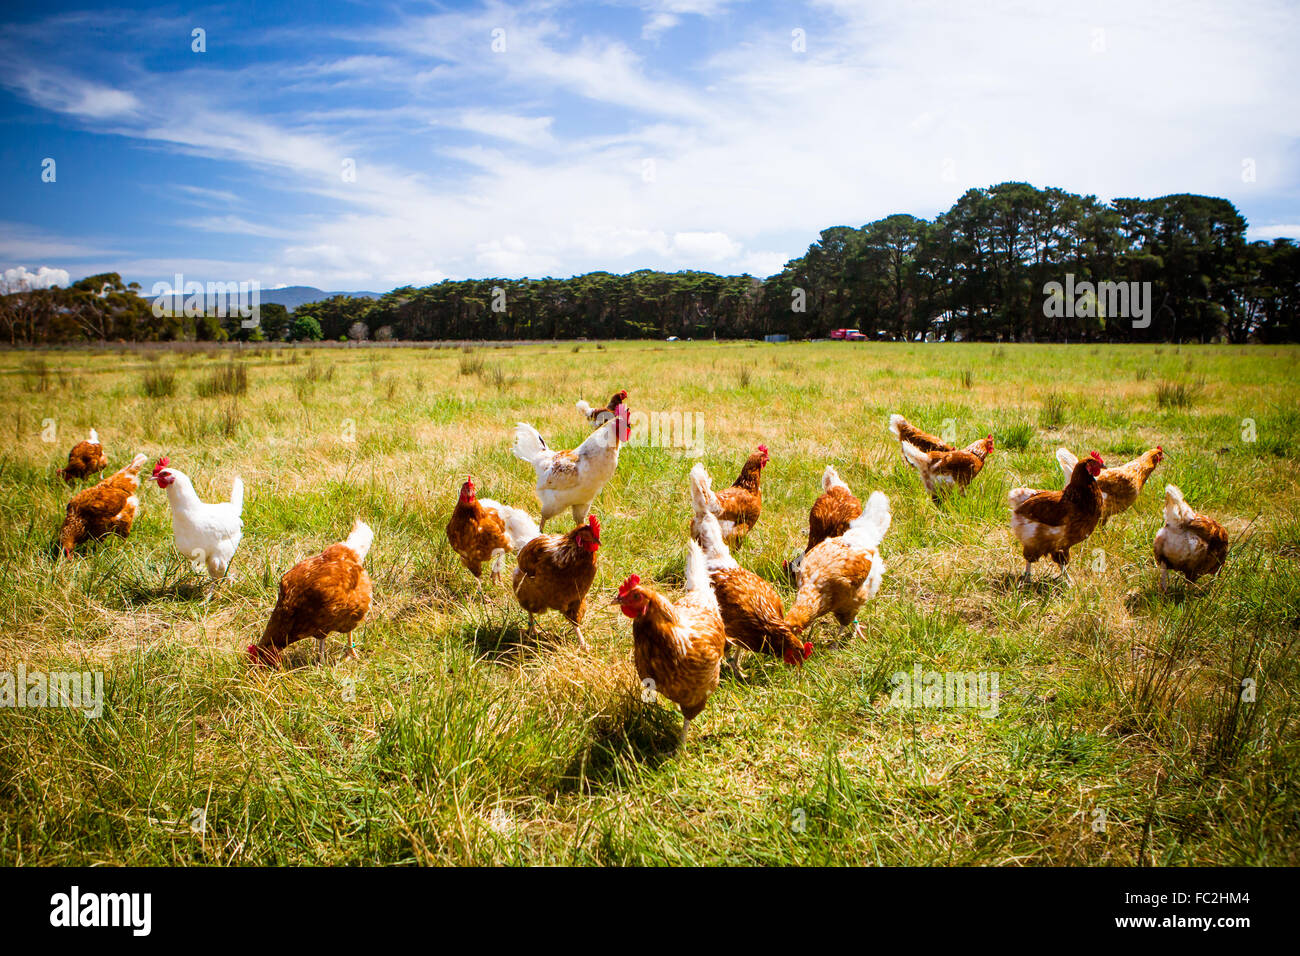 Chickens In A Field - Stock Image